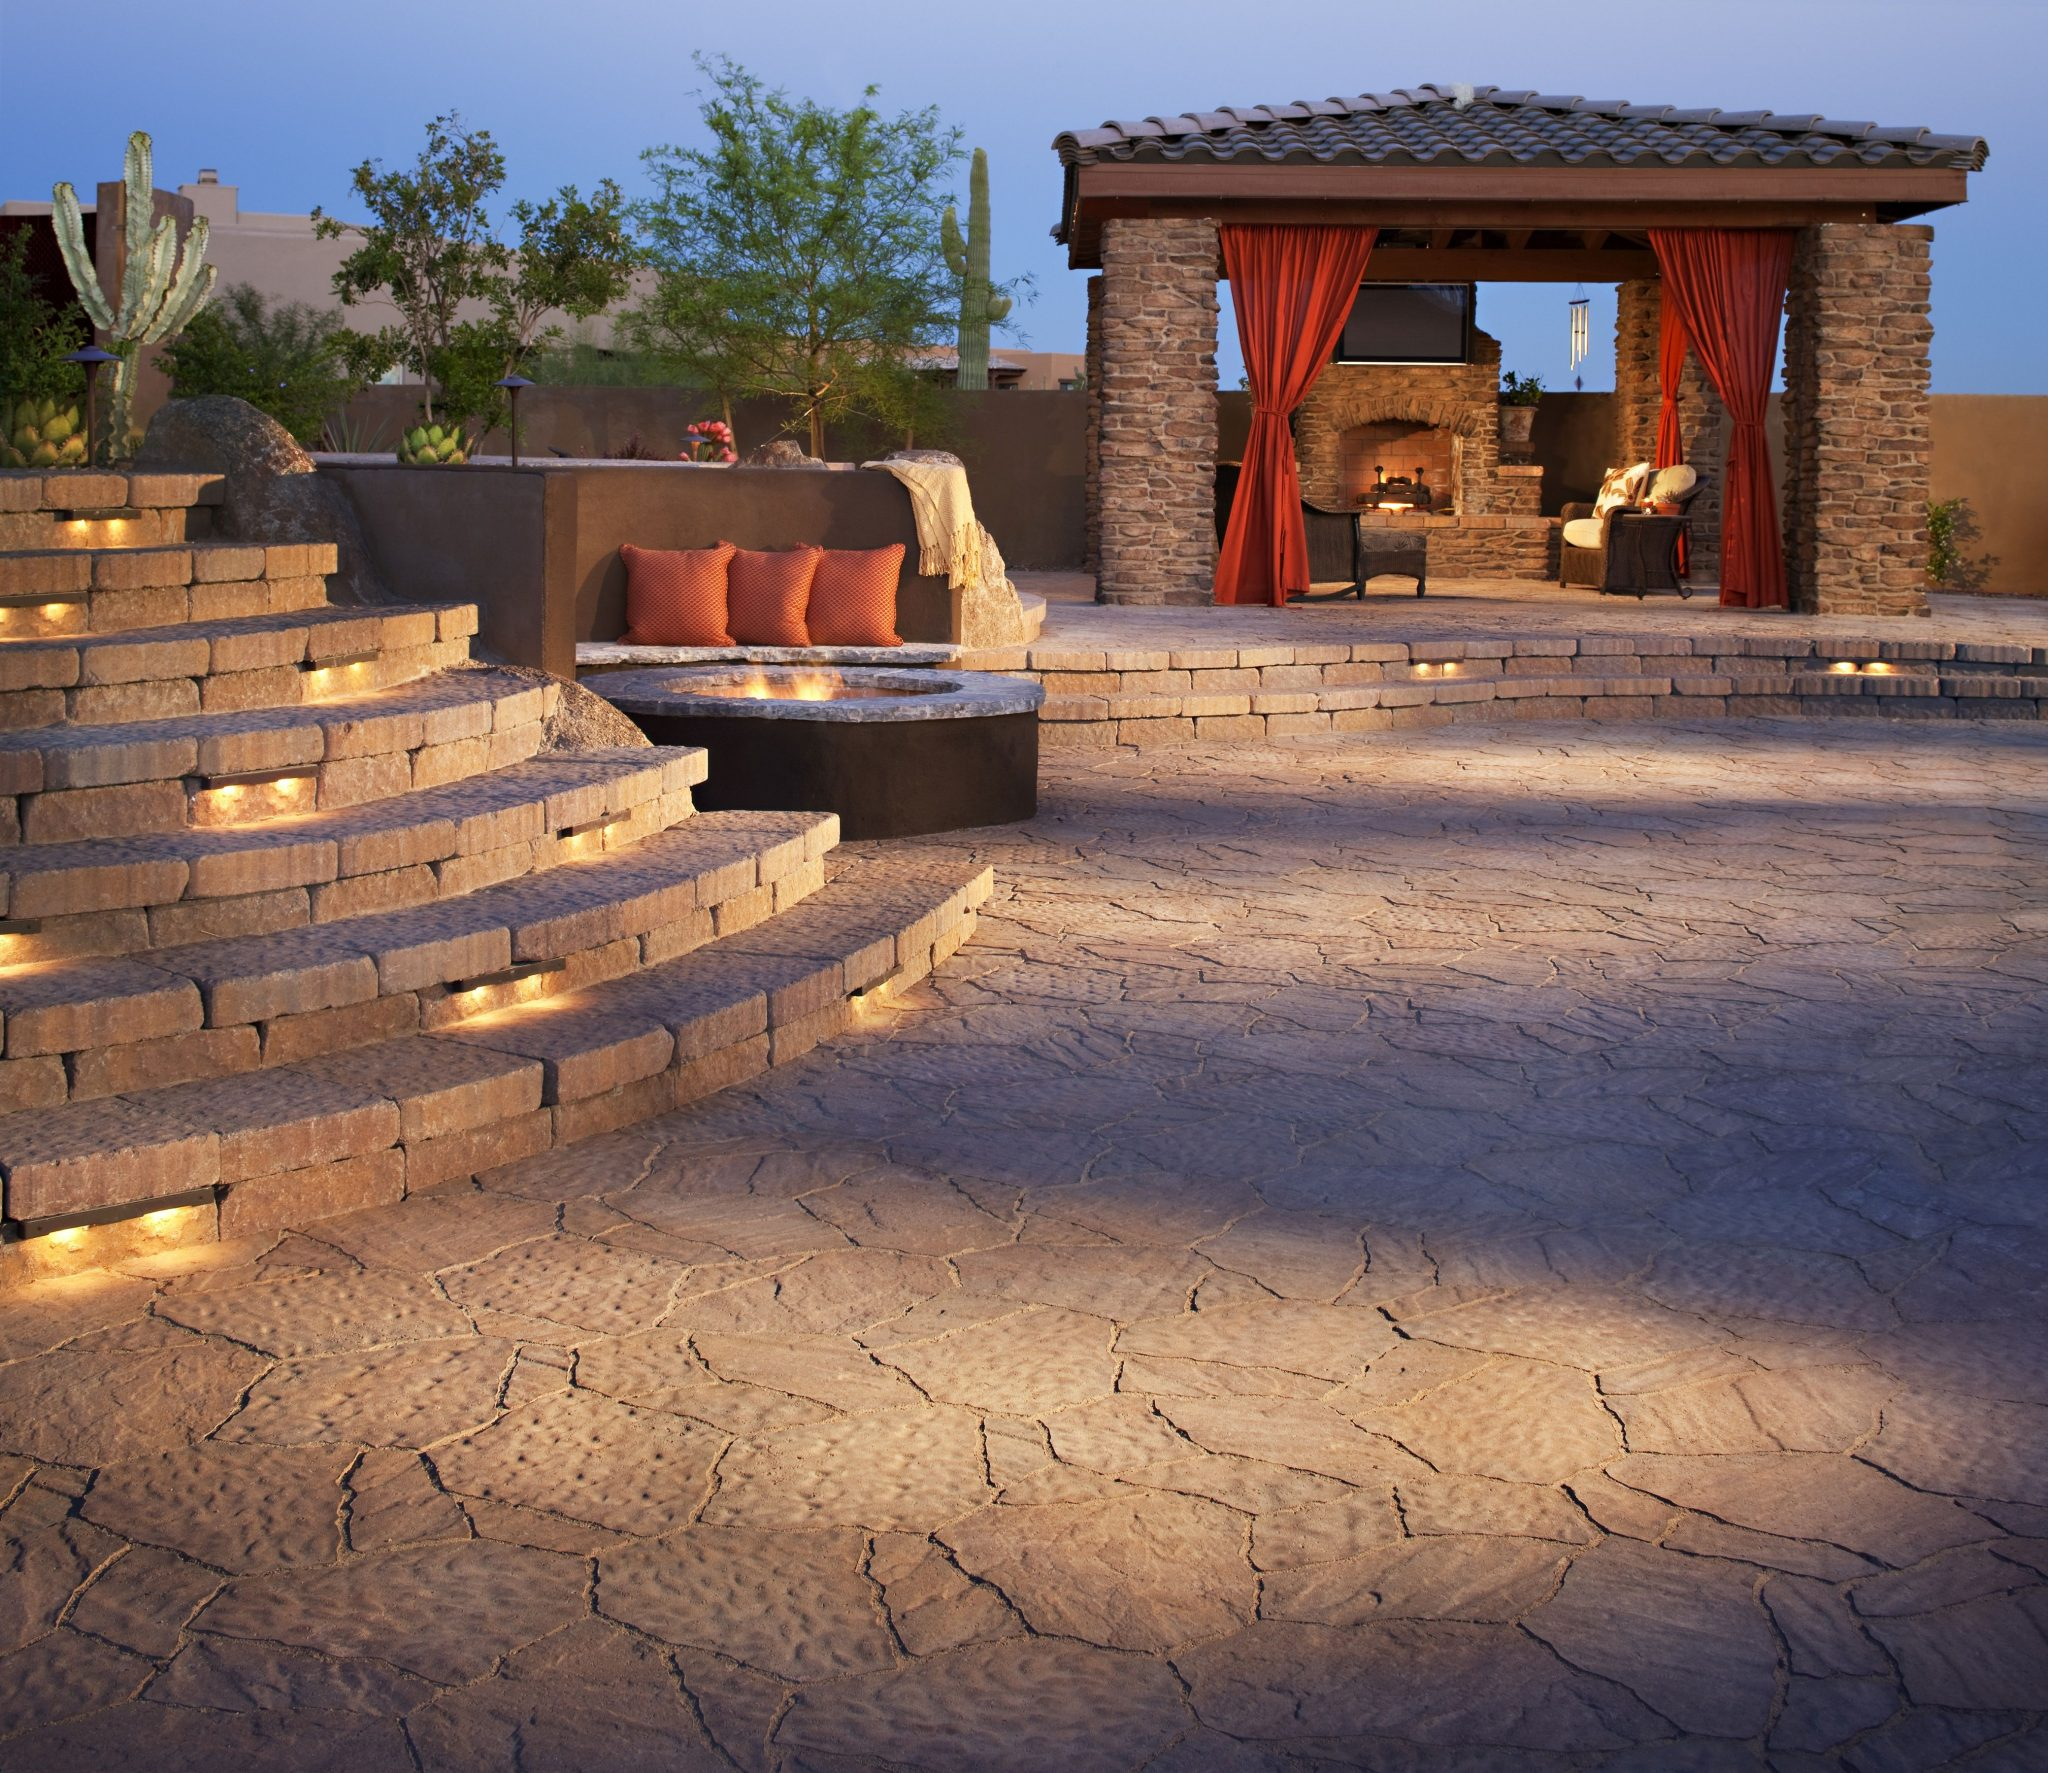 Downlighting on Paving Stone Steps